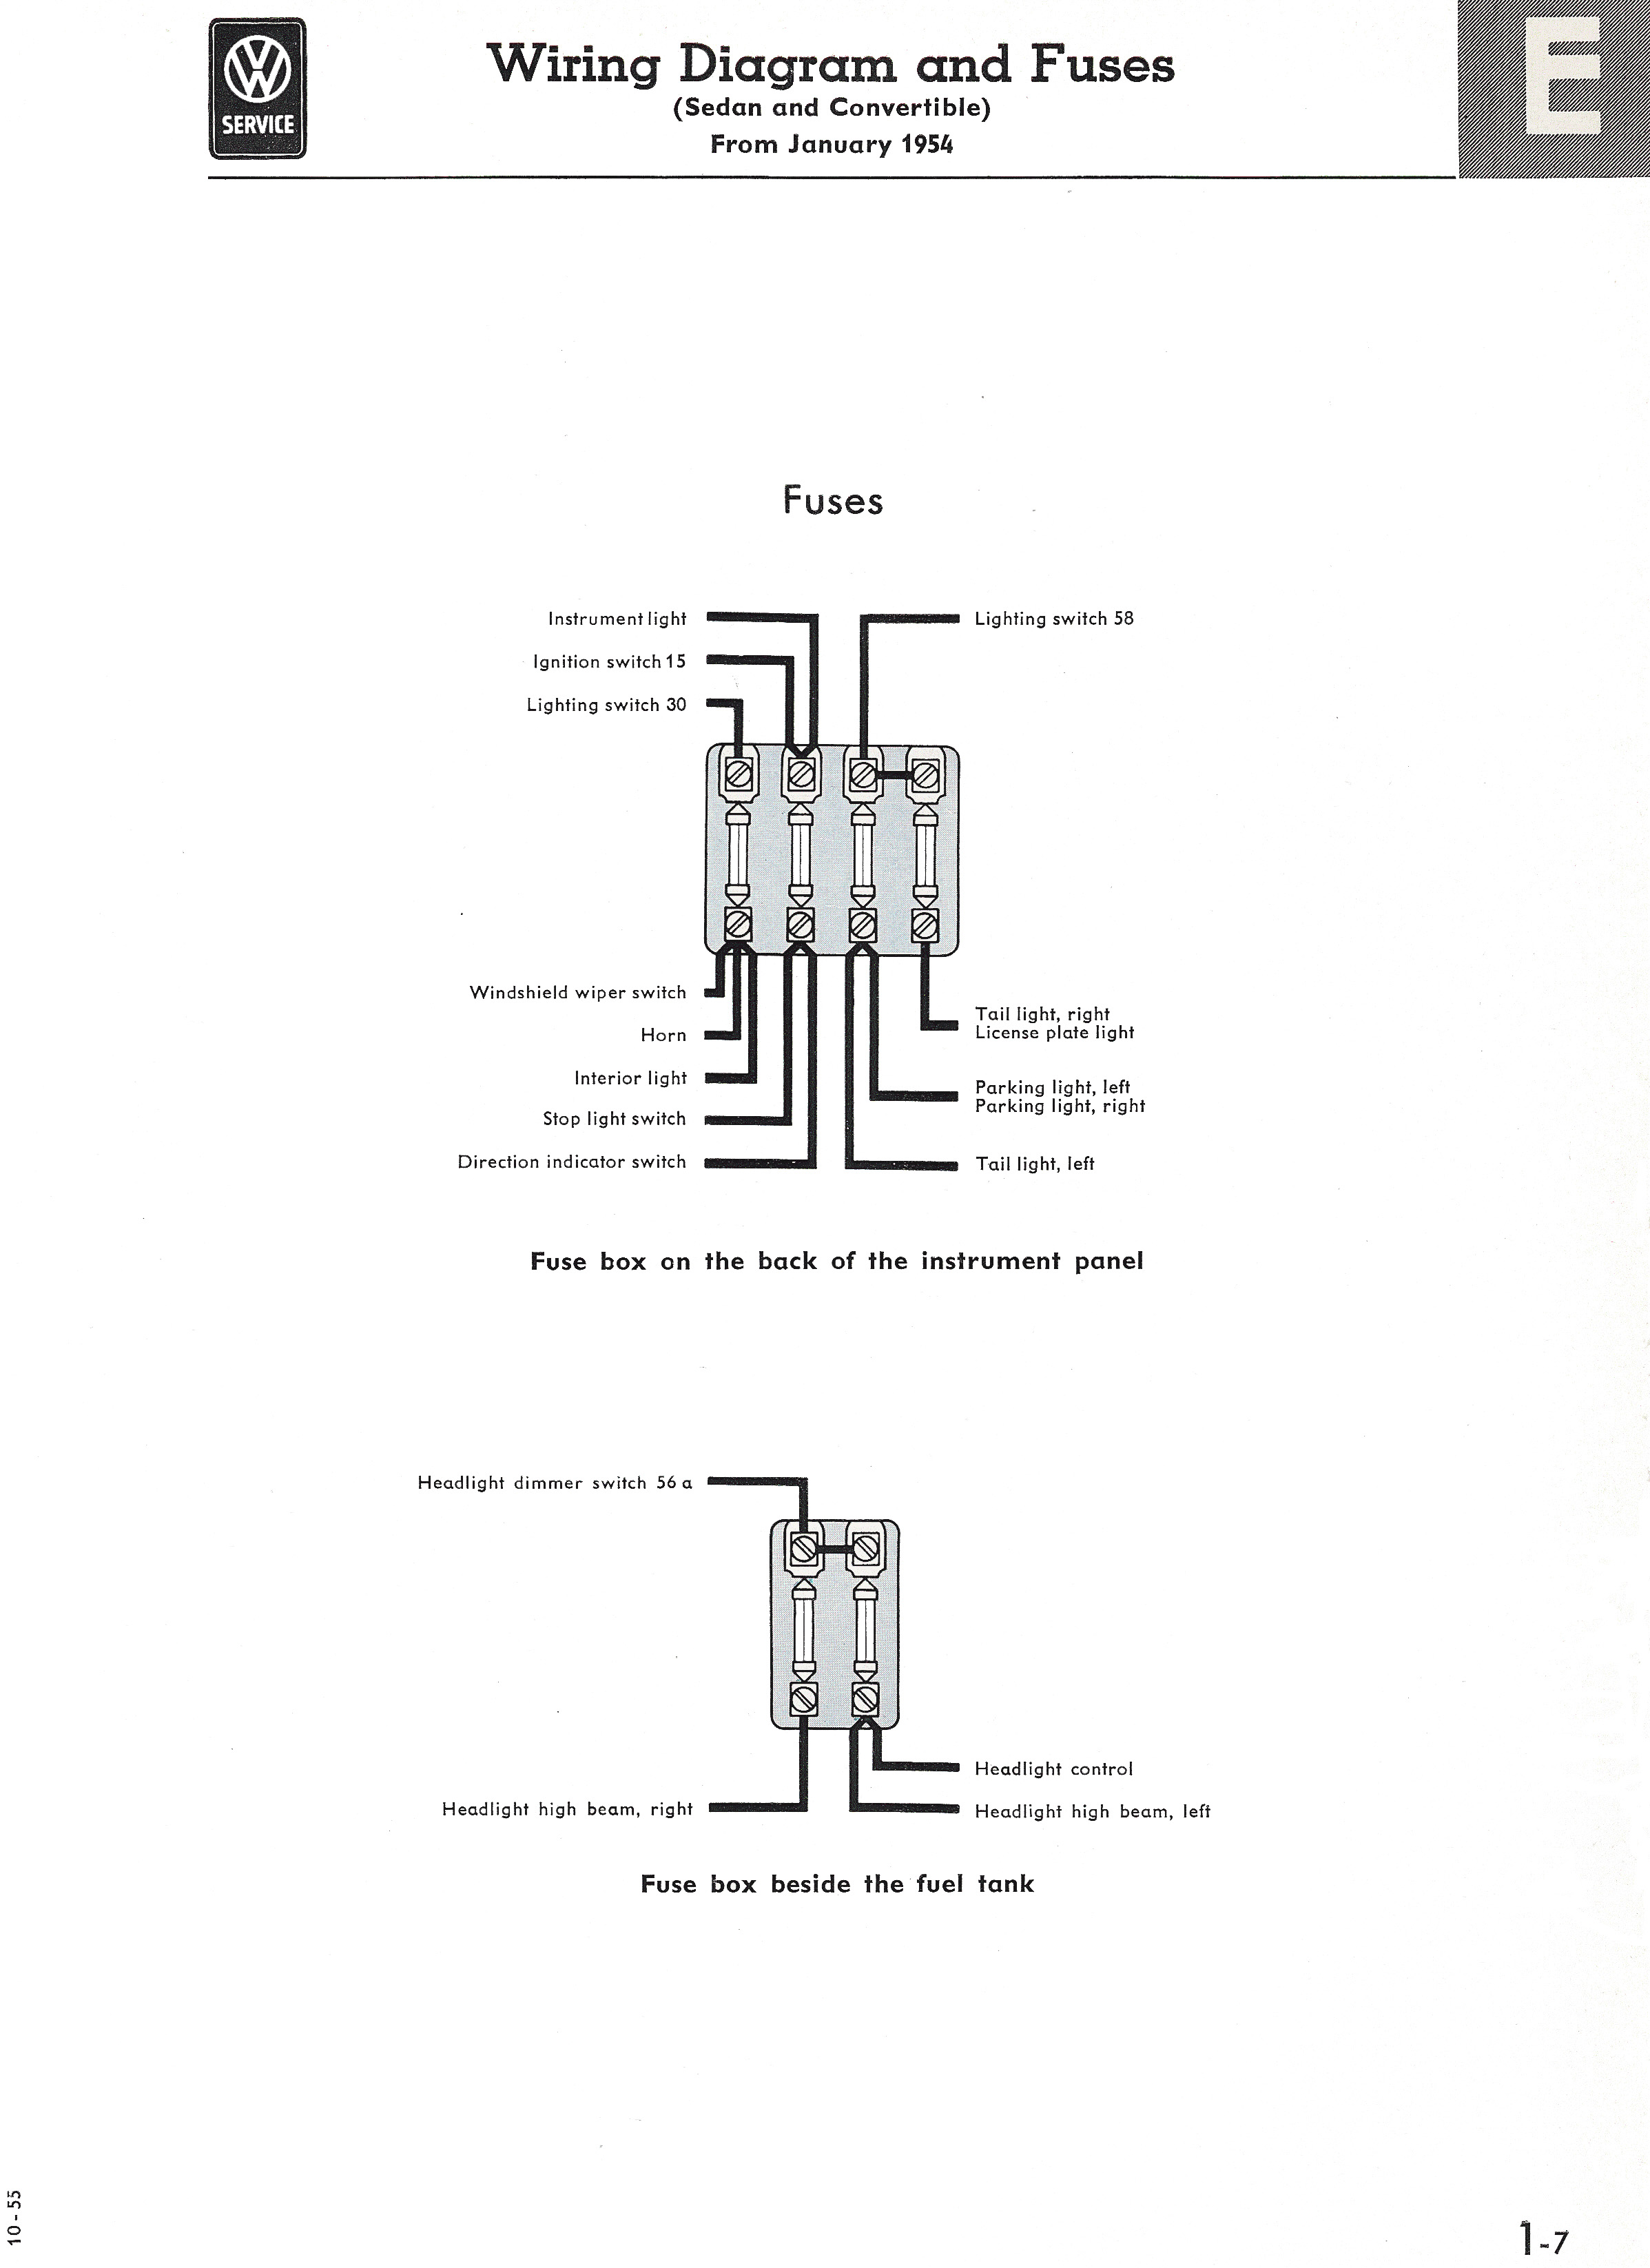 Type 1 Wiring Diagrams Signal Tail Light Diagram Get Free Image About